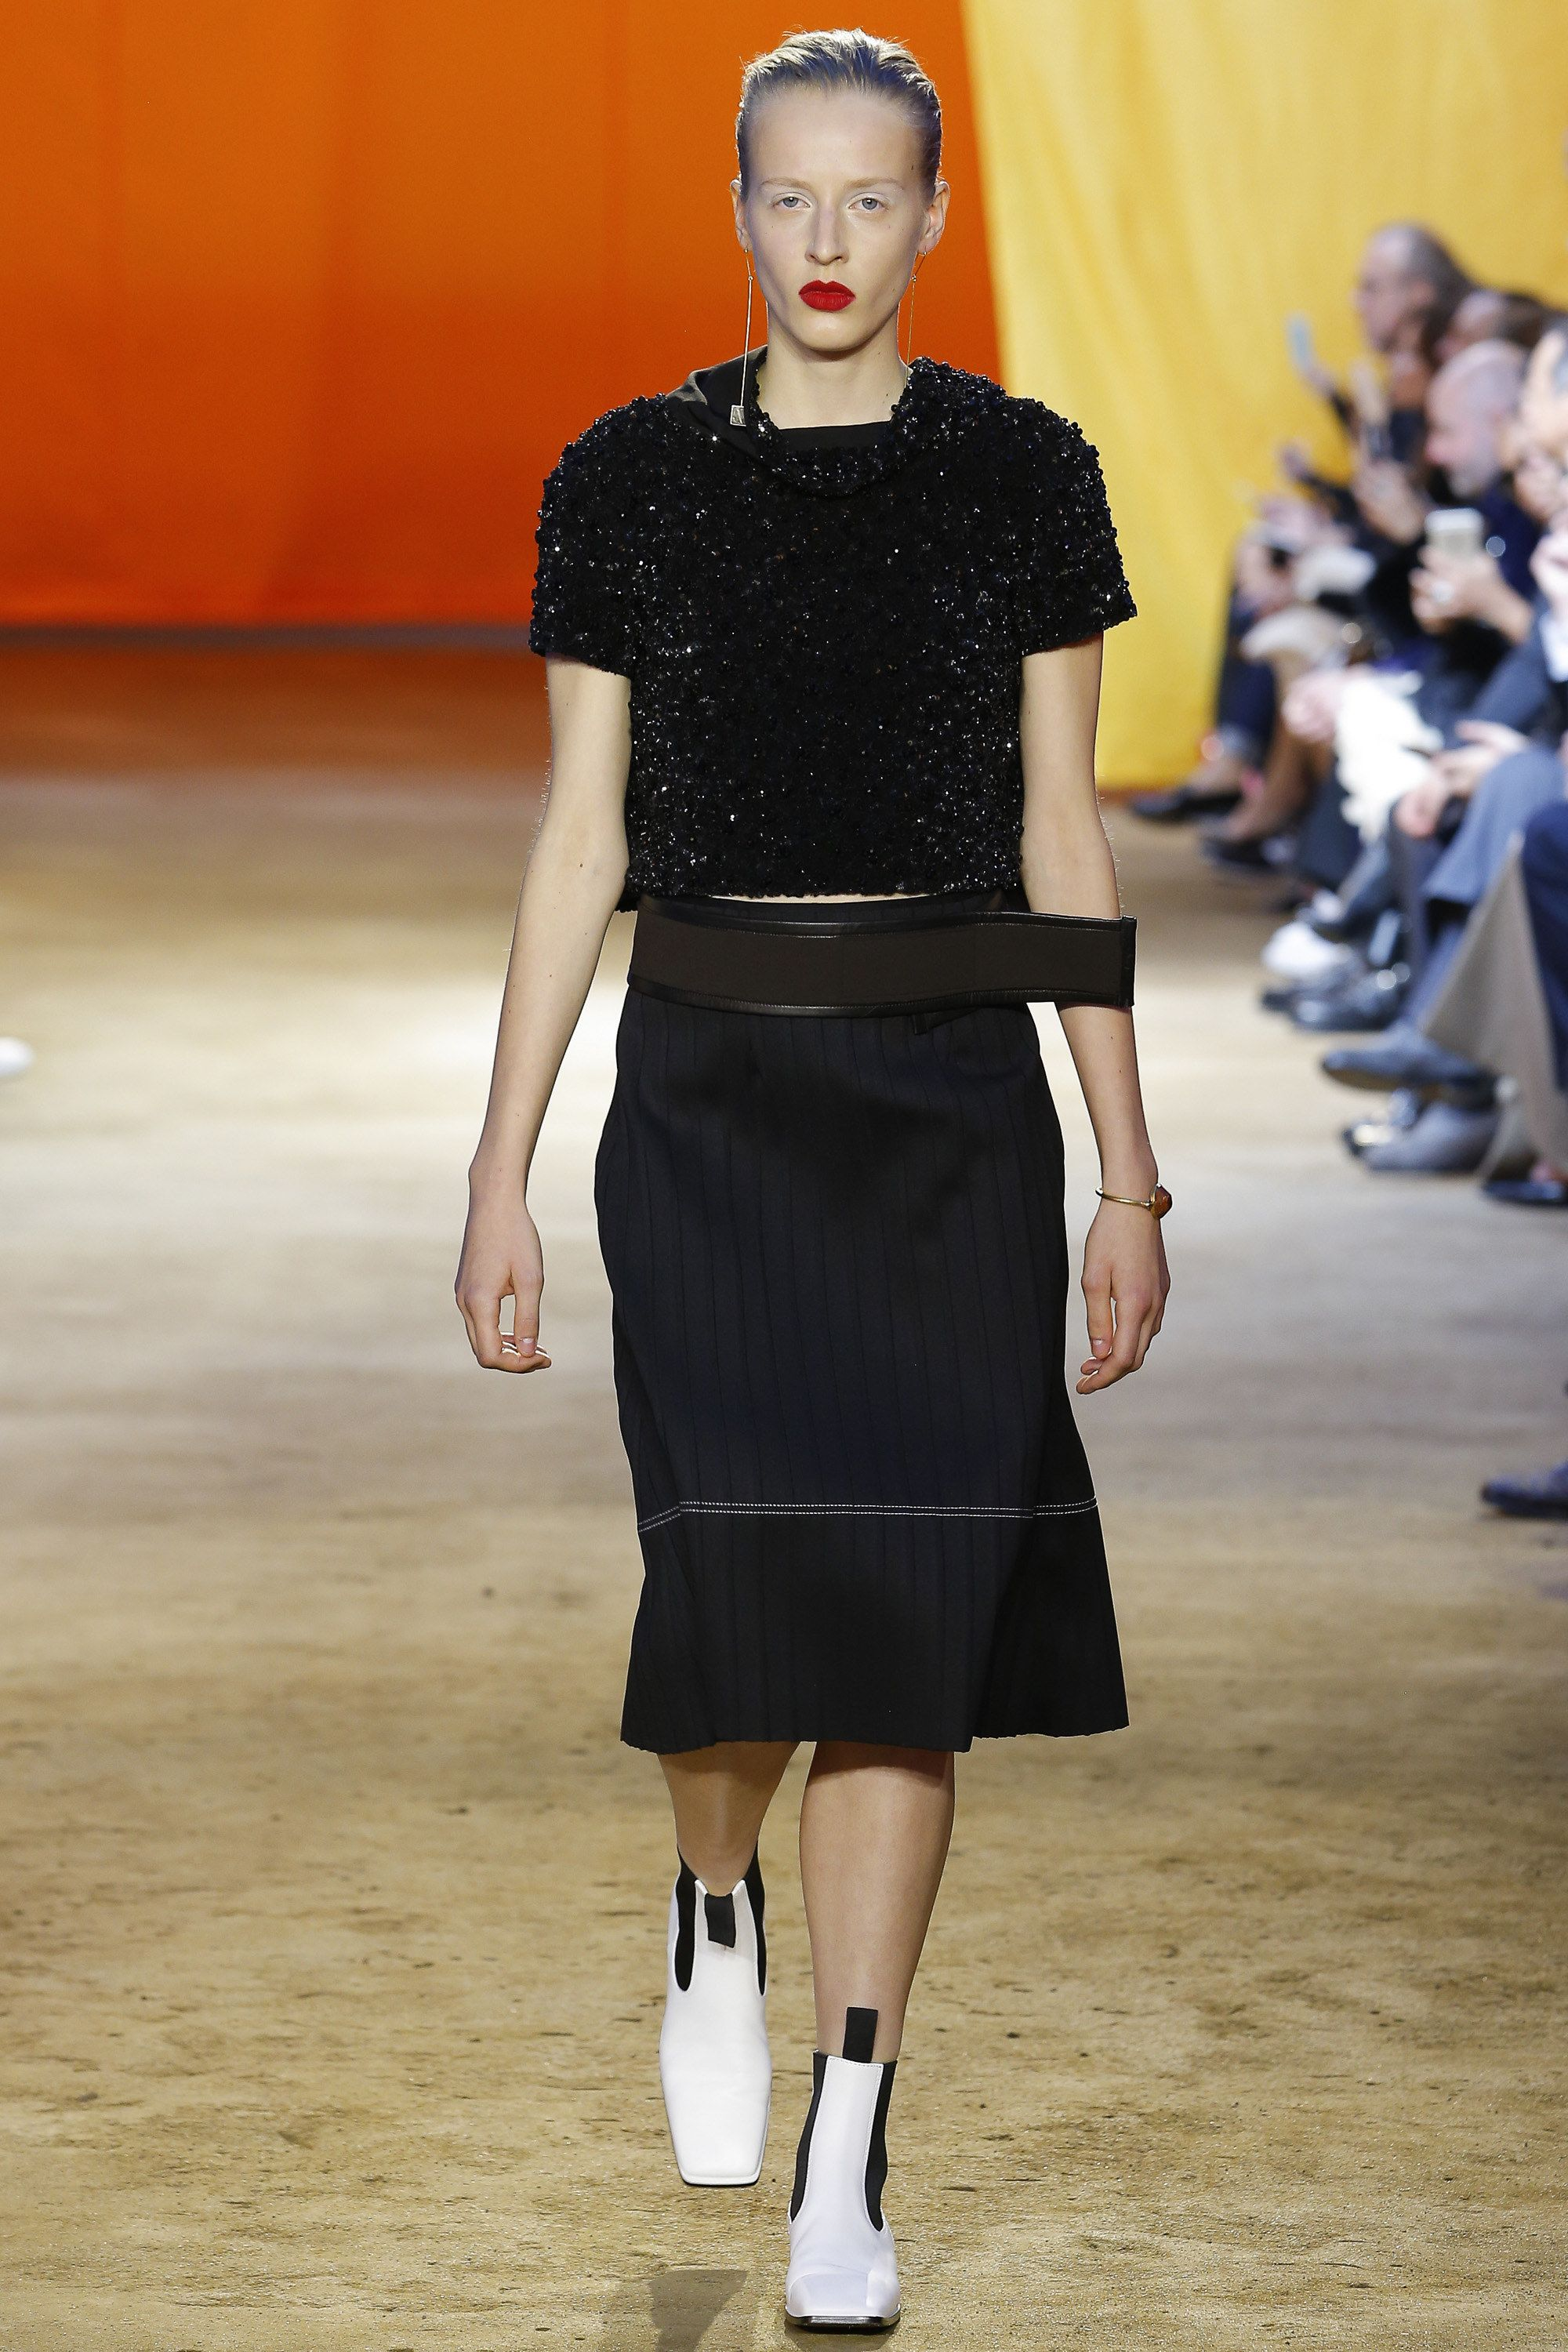 Céline Spring 2016 Ready-to-Wear Fashion Show - Maggie Maurer - sparkly tops are all the rage right now!